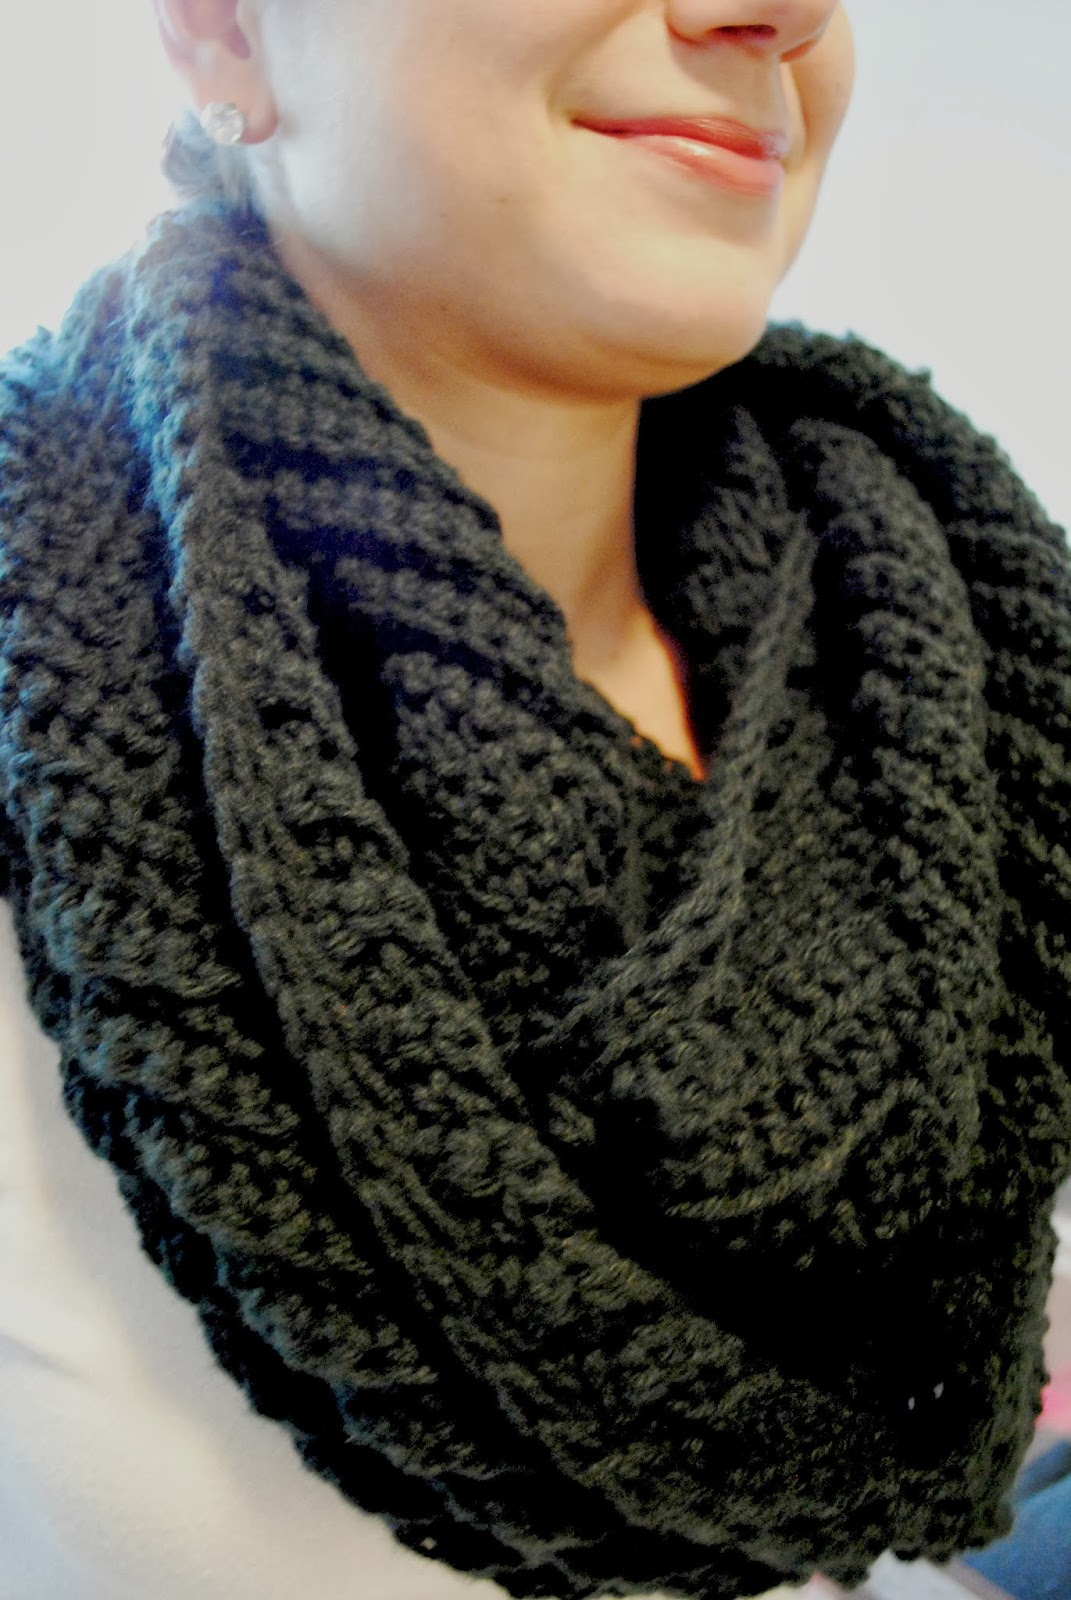 Crochet Scarf Pattern Thick Yarn : LOEE. M.: SUBTLE CHEVRON INFINITY SCARF.